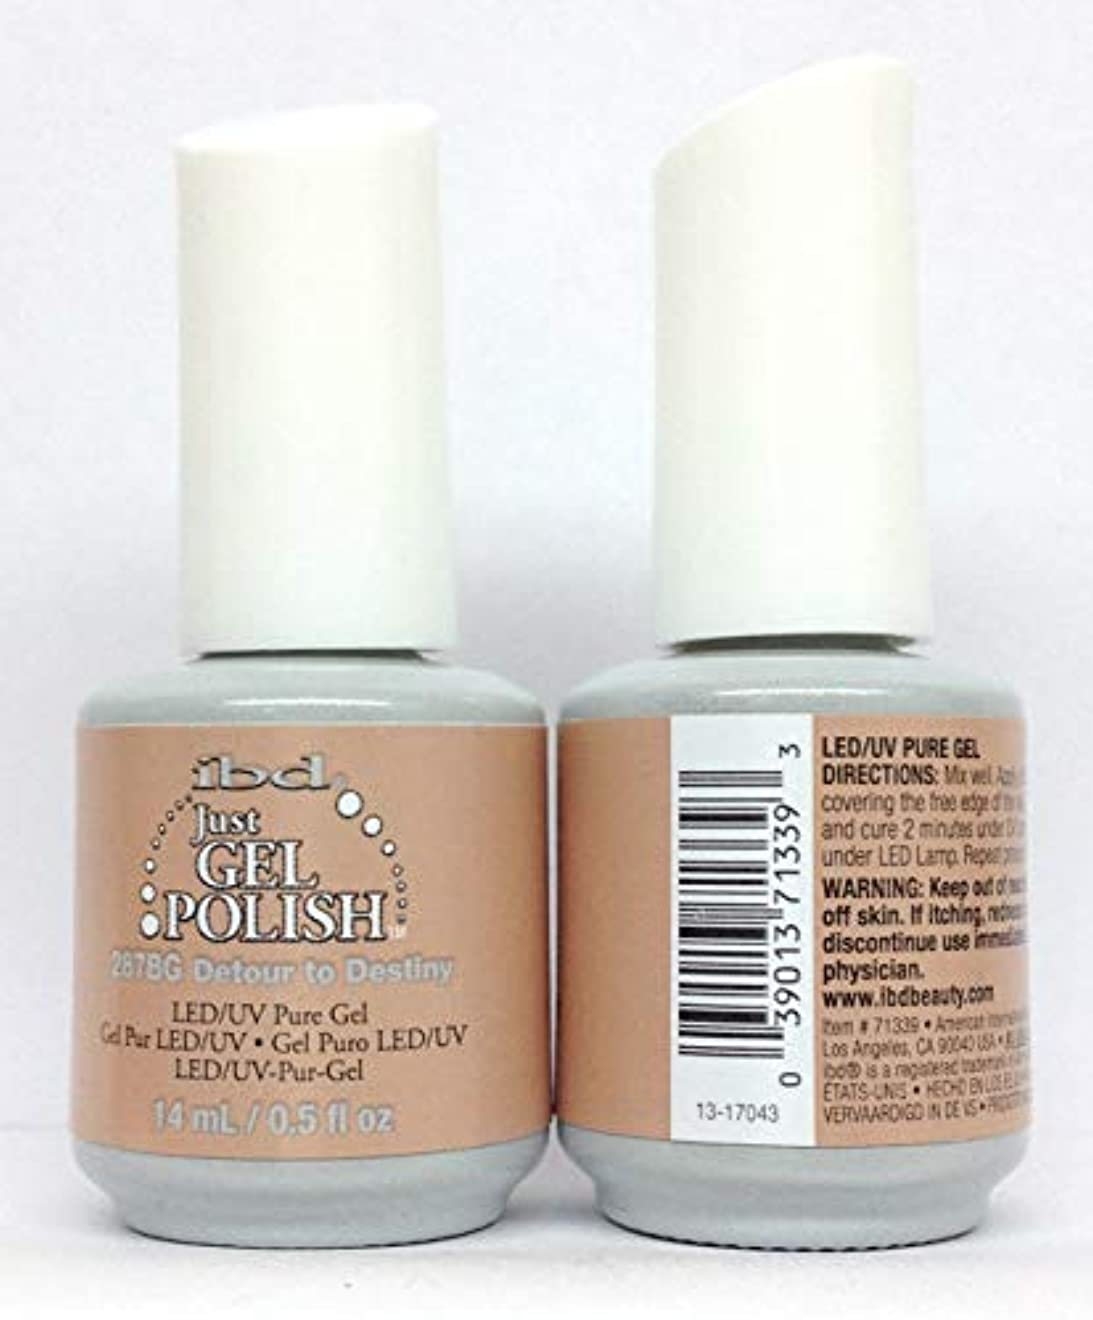 マニア固める登るibd Just Gel Polish - Serengeti Soul Collection - Detour To Destiny - 14ml / 0.5oz